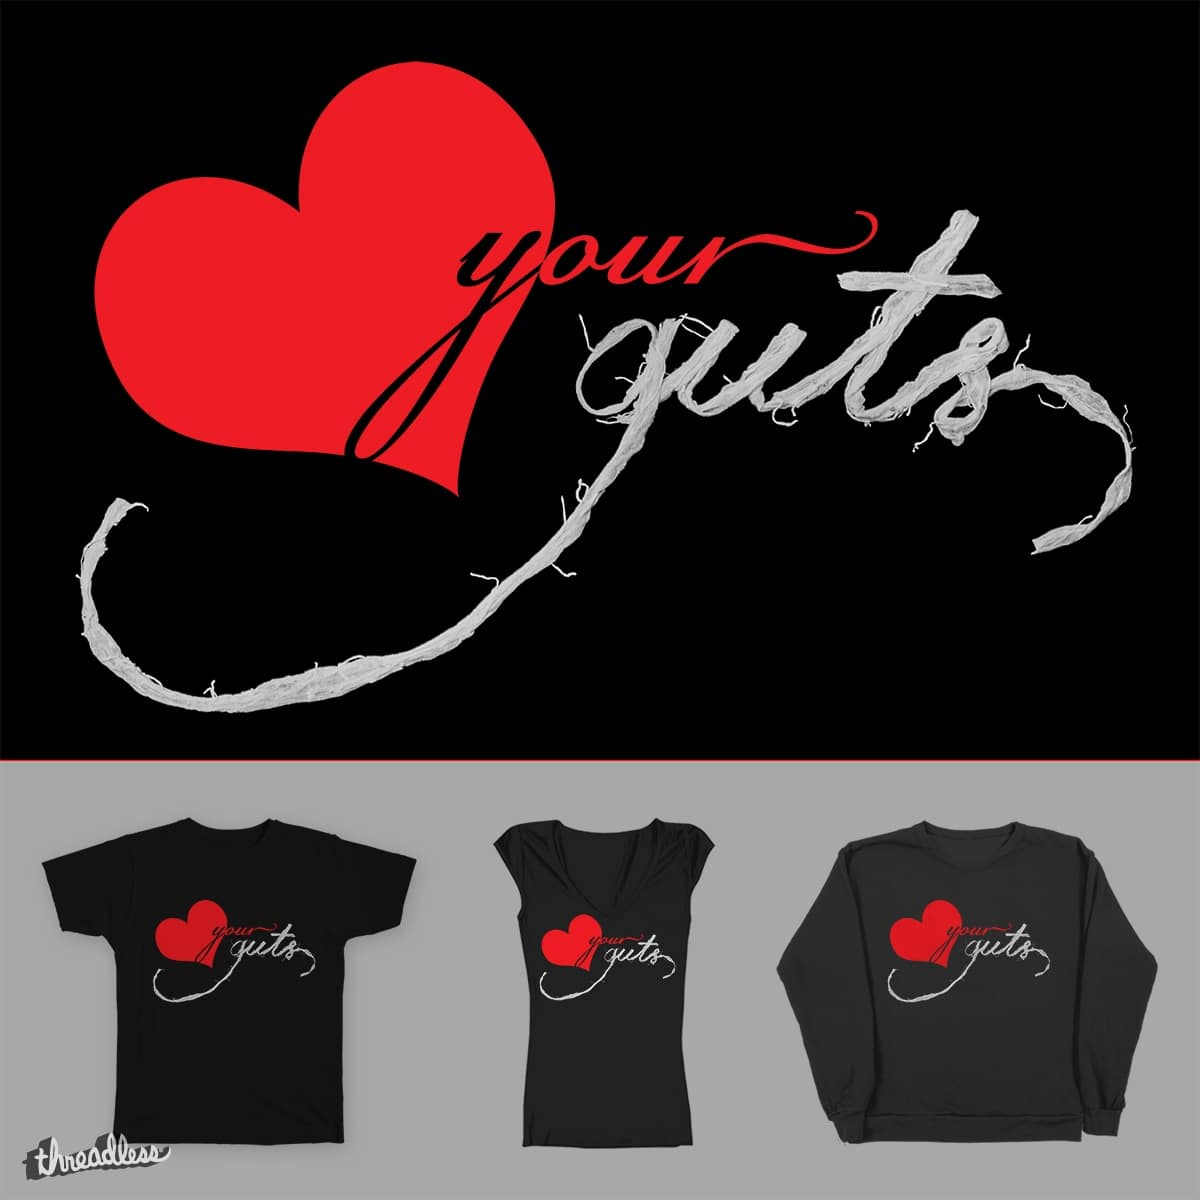 Love Your Guts by IntestineArt on Threadless